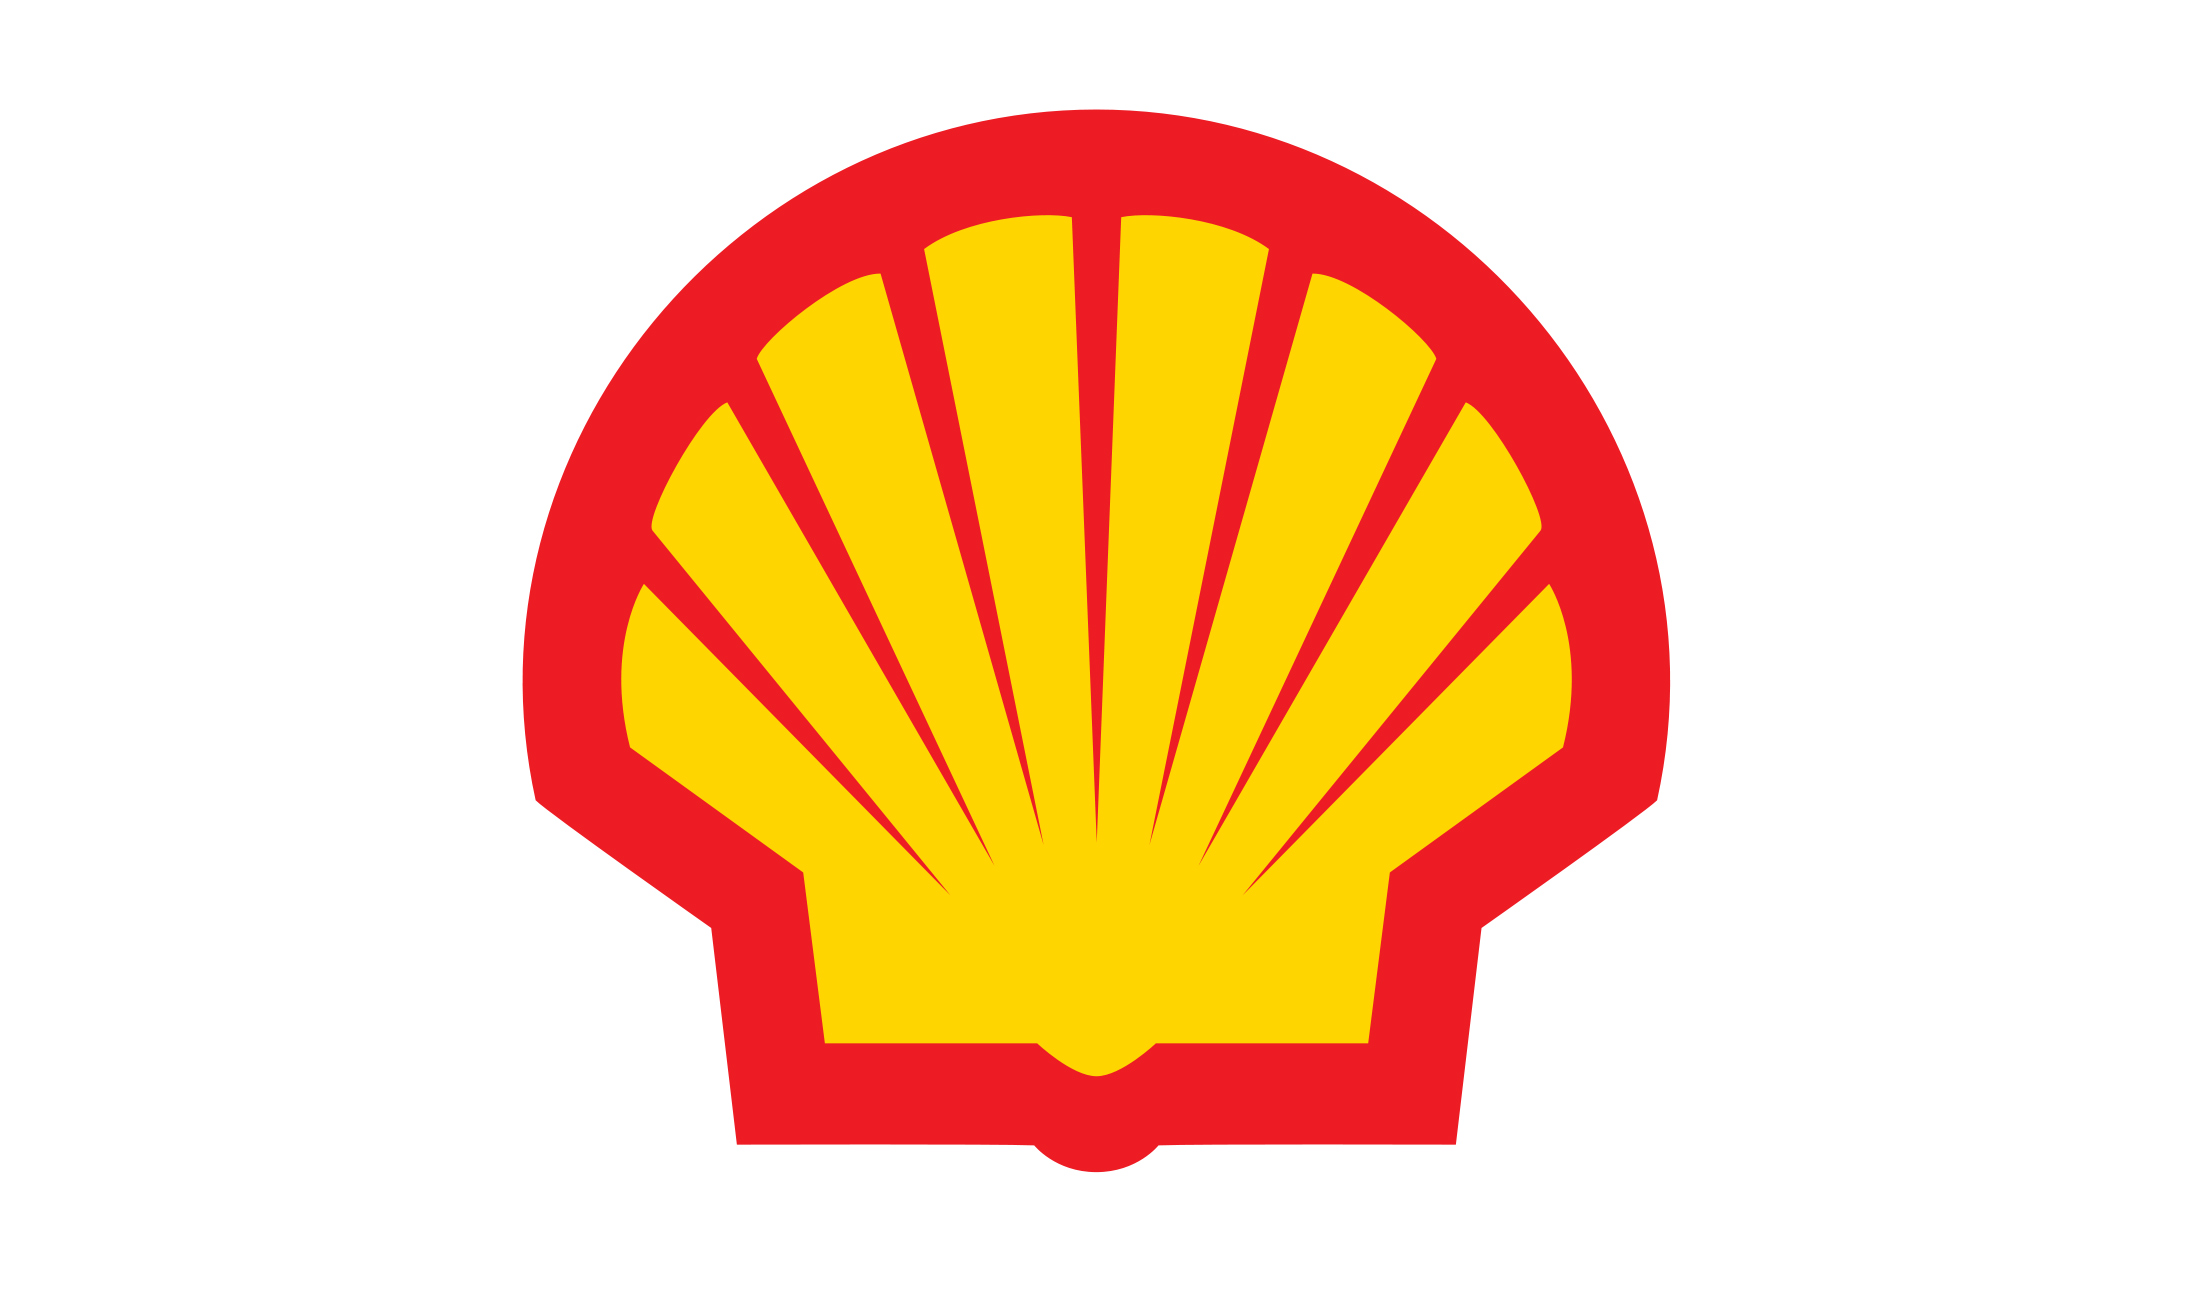 Shell corporate logo